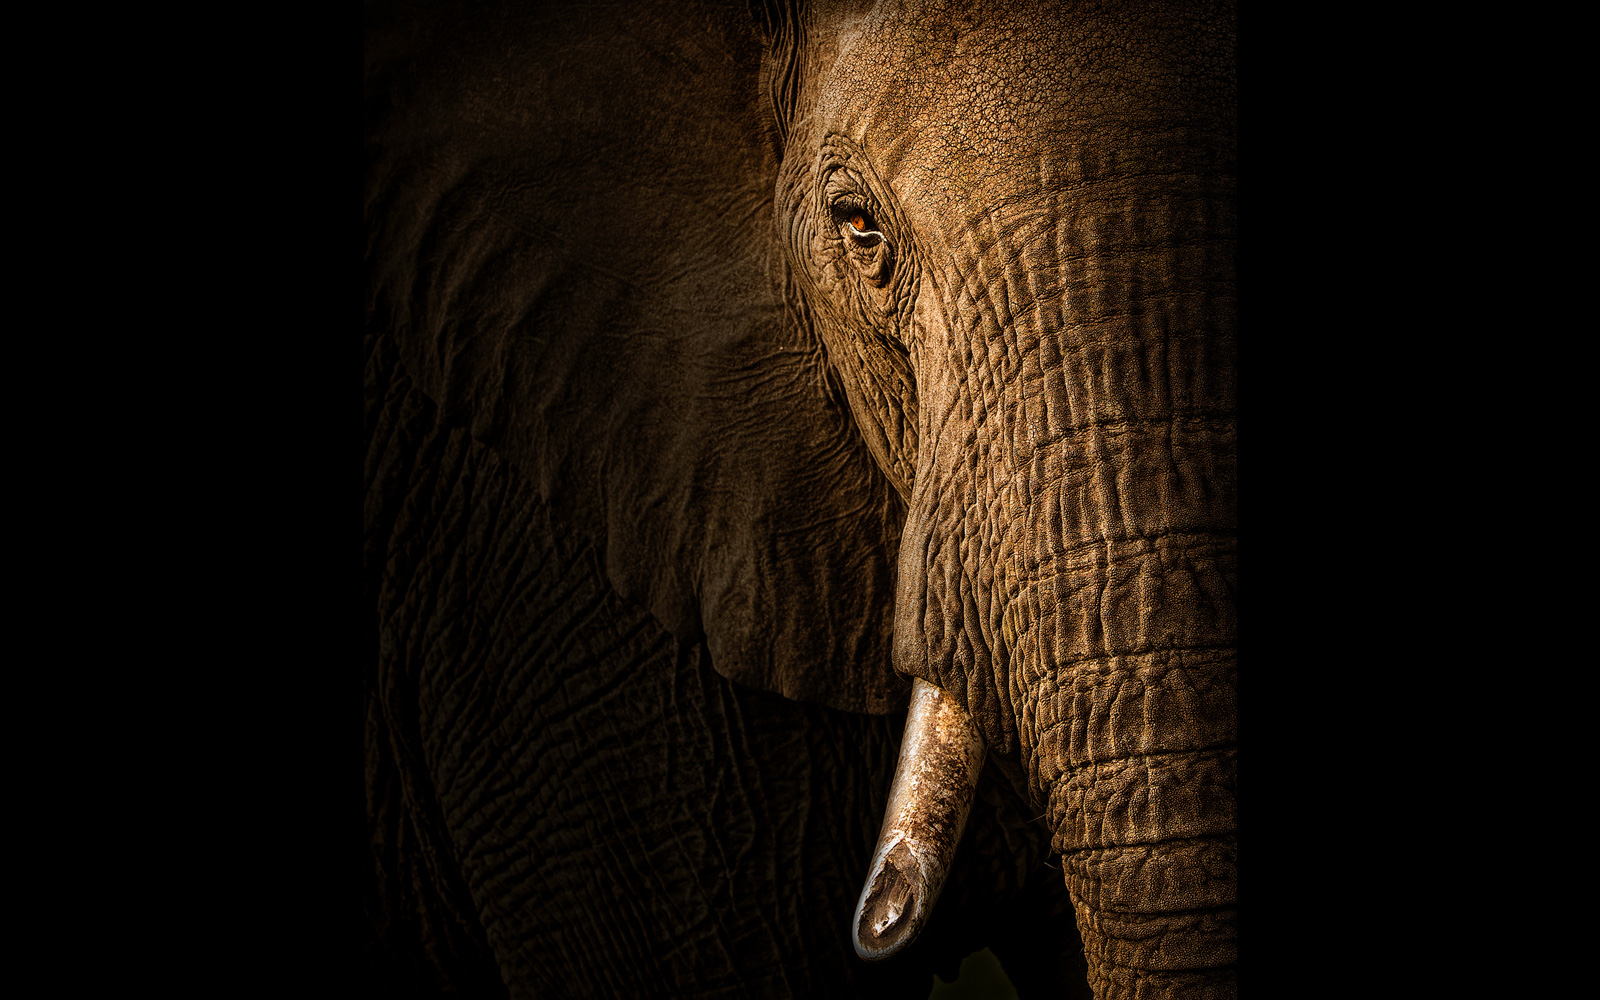 """Broken"" – an elephant with a broken tusk in Maasai Mara National Reserve, Kenya © Andy Howe (Photographer of the Year 2018 entrant)"